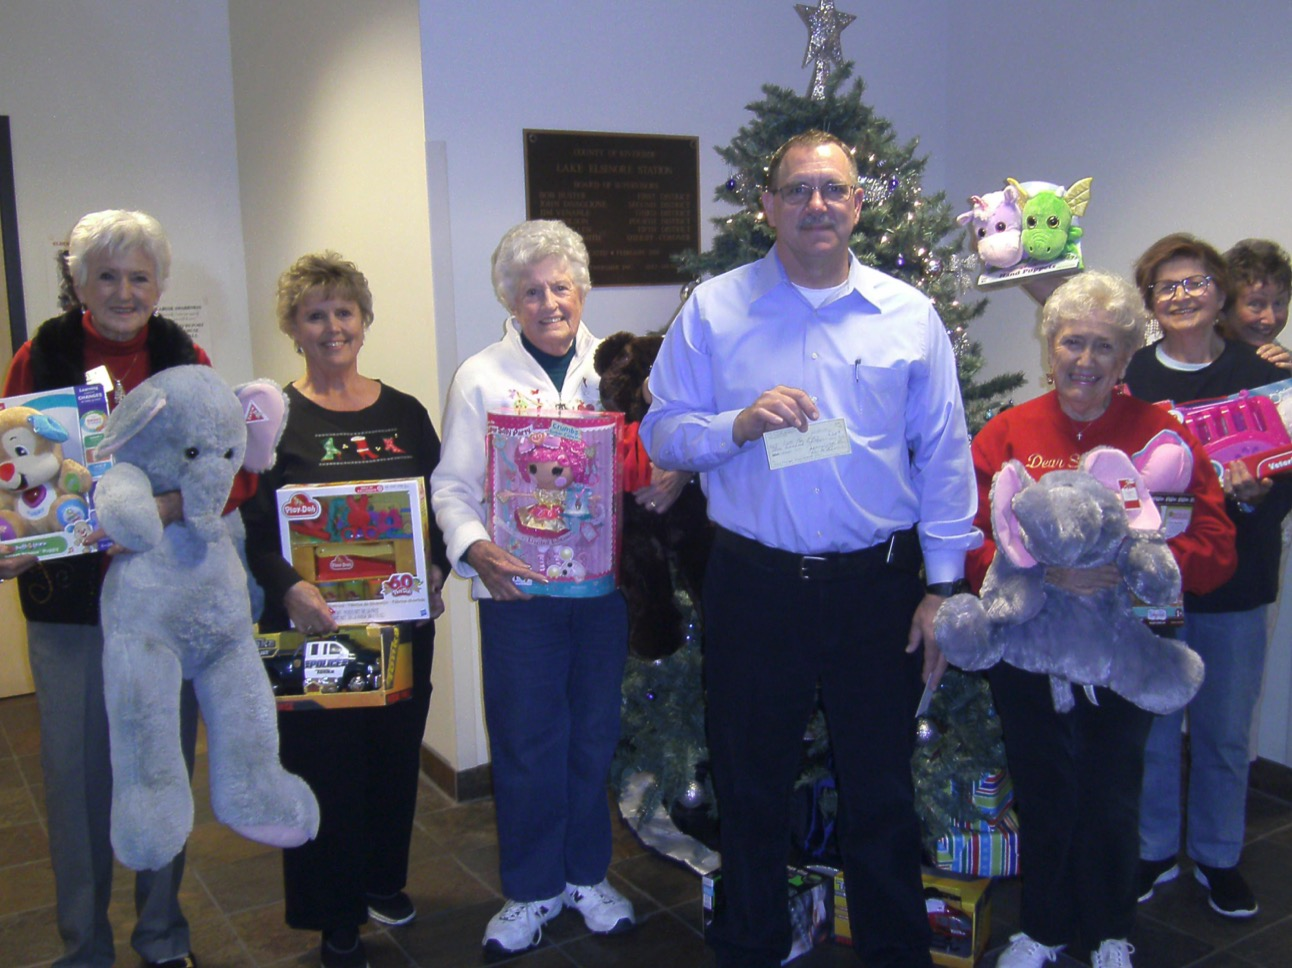 Lions and Lioness Clubs give back during the holidays